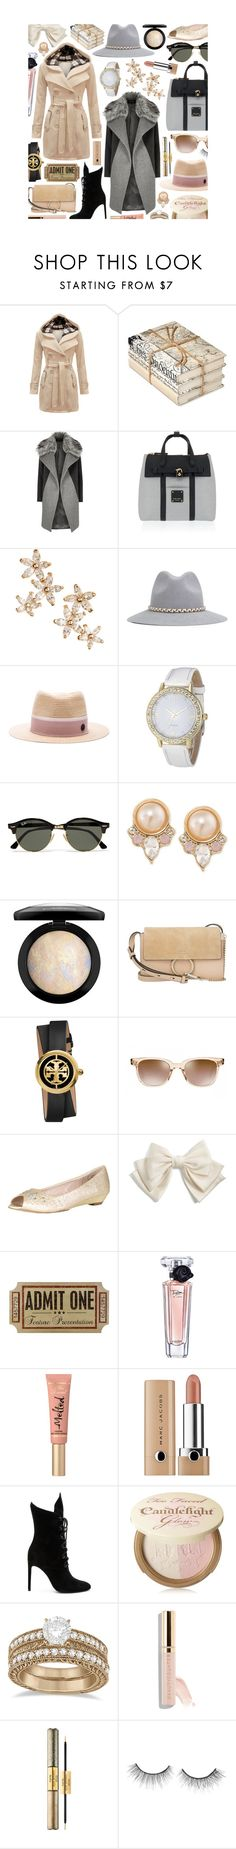 """Outerwear"" by tara-omar ❤ liked on Polyvore featuring GO Home Ltd., River Island, Henri Bendel, Bonheur, YOSUZI, Maison Michel, Ray-Ban, Carolee, MAC Cosmetics and Chloé"